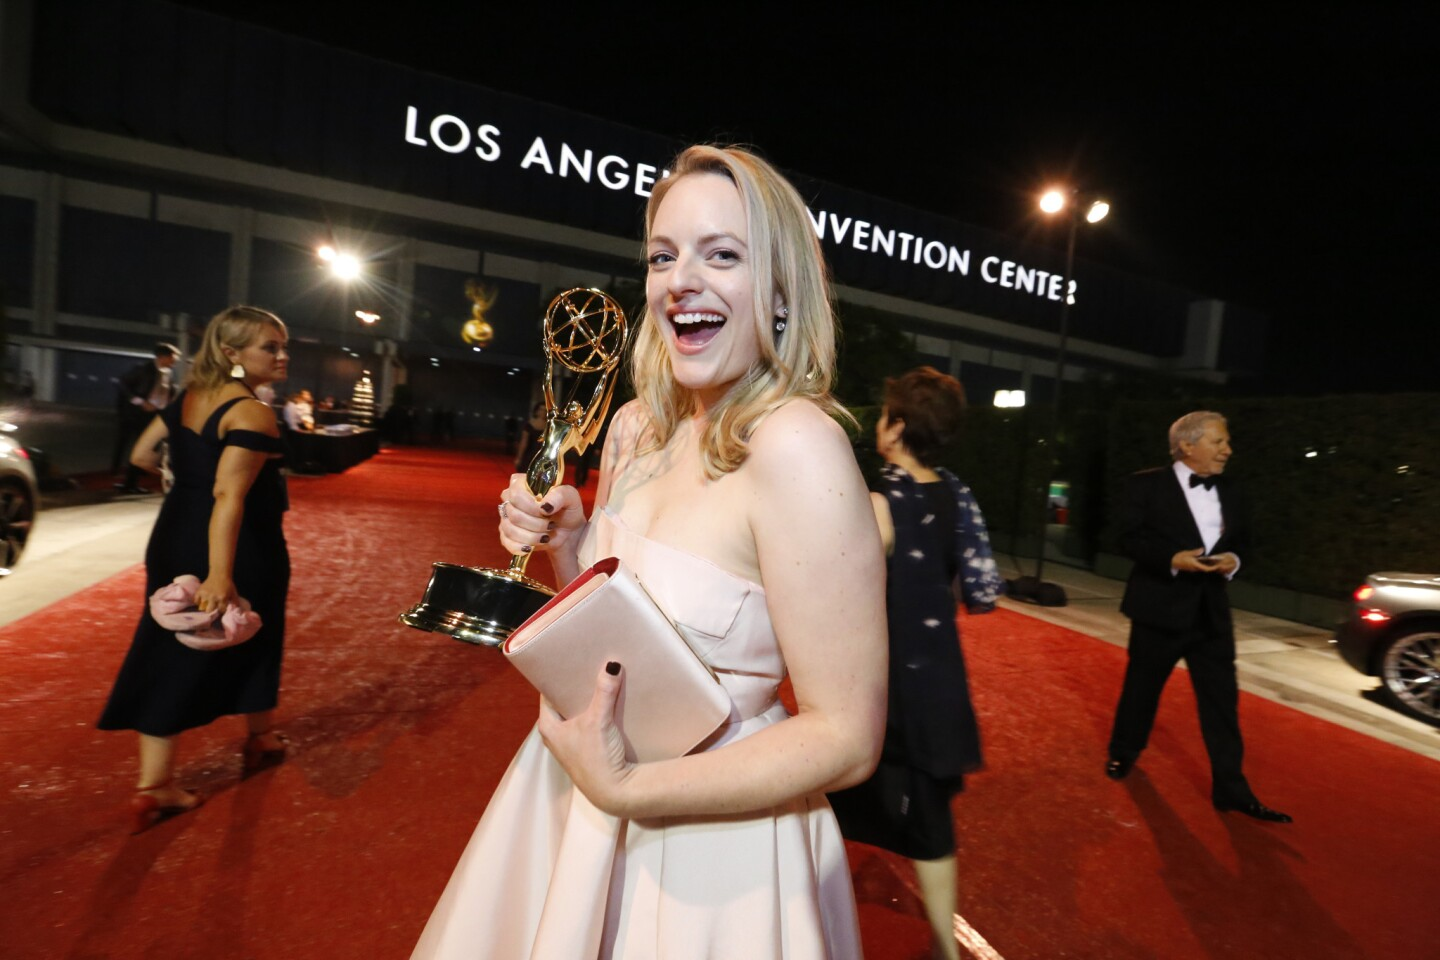 """Elisabeth Moss, who won the lead actress in a drama series Emmy for her work on """"The Handmaid's Tale,"""" poses with her statue in front of the convention center."""